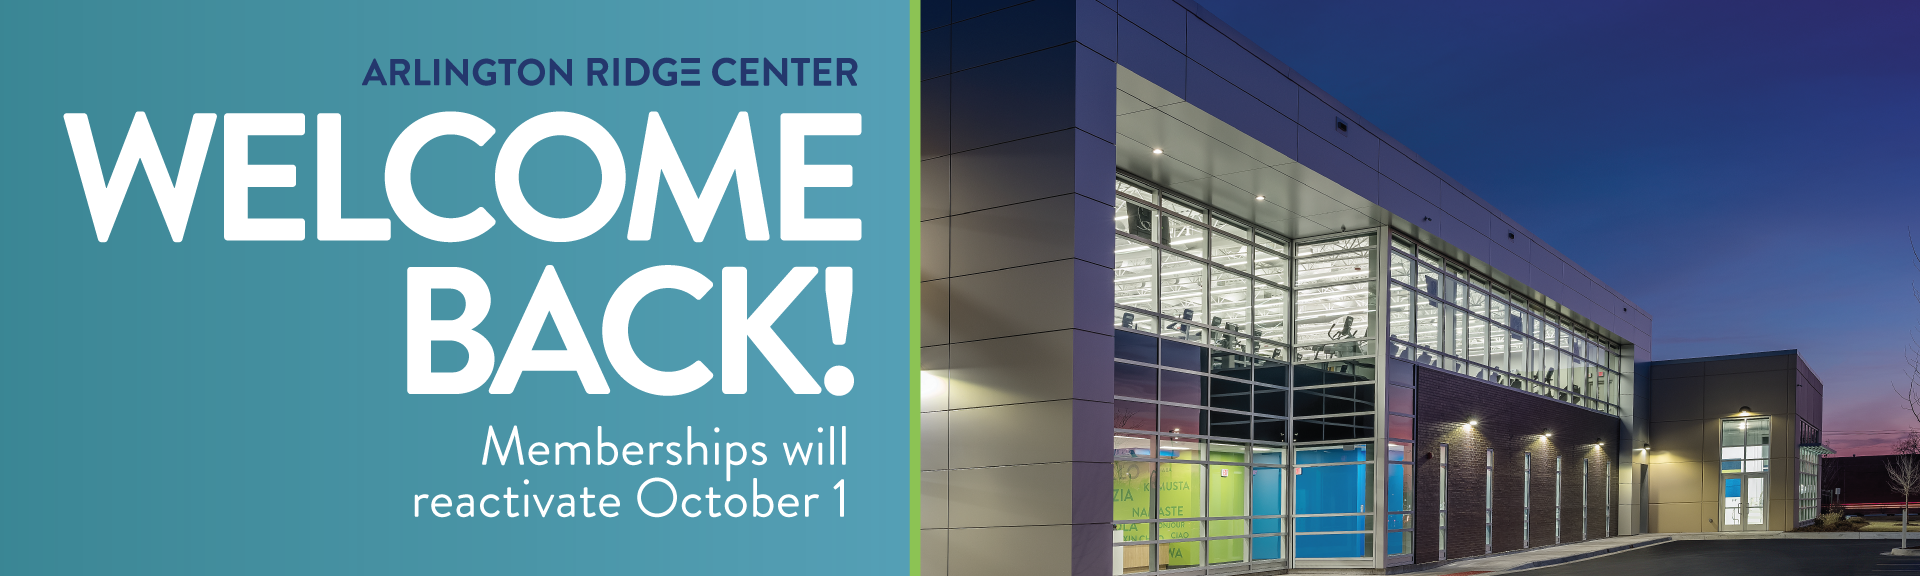 Welcome Back Memberships Reactivate October 1